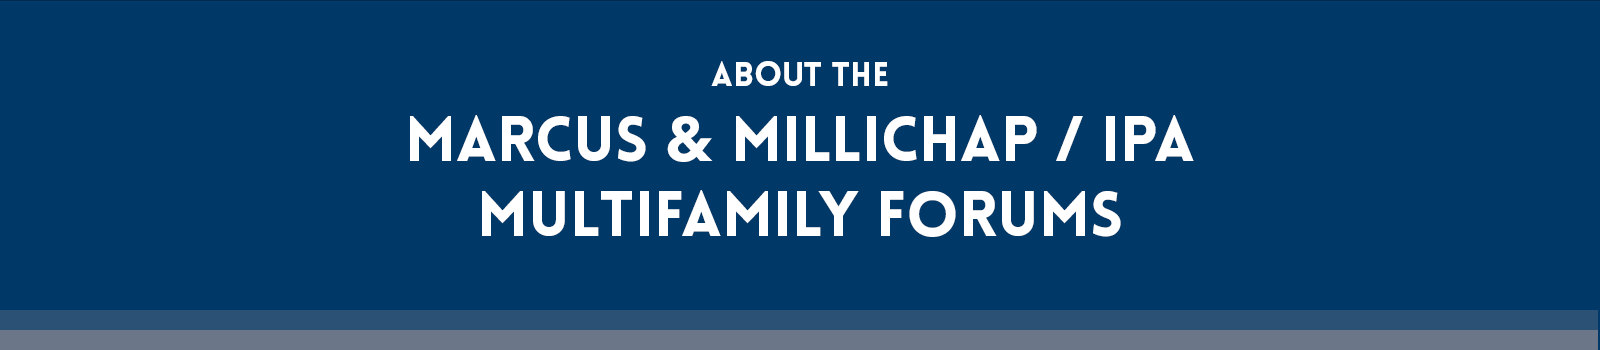 About the Marcus & Millichap / IPA Multifamily Forums